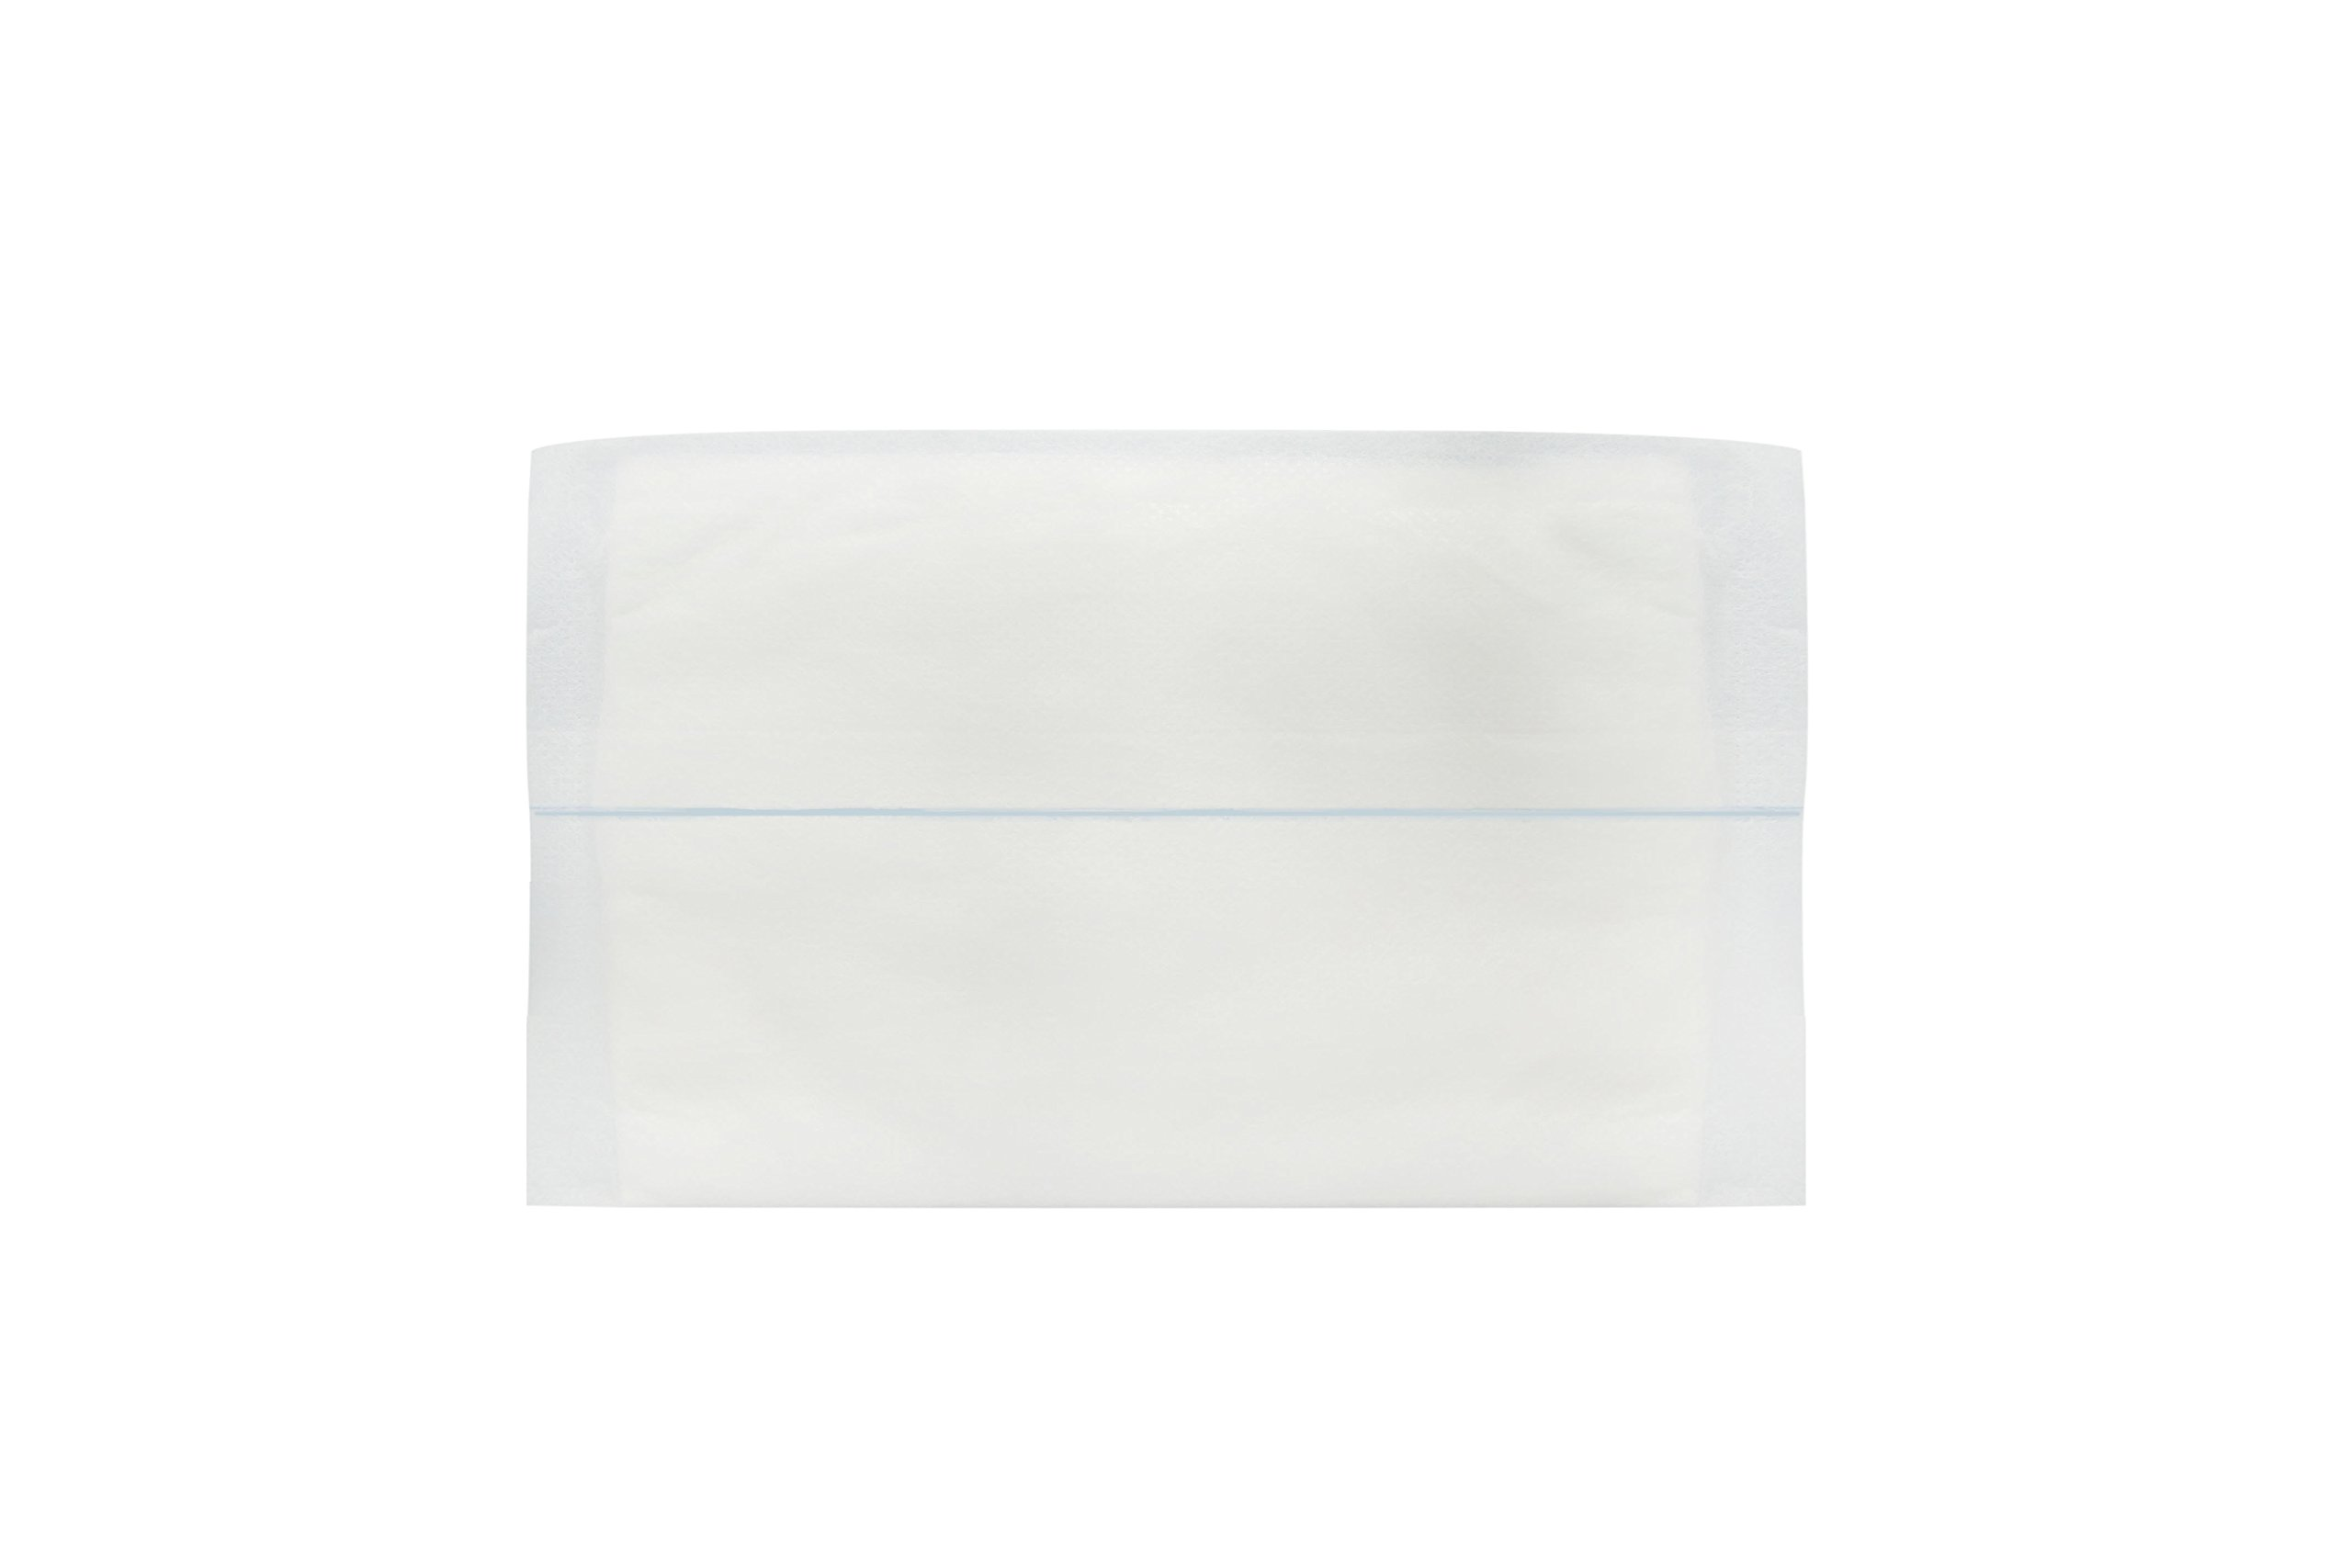 Dukal 5945 ABD Pad, Non-Sterile, 12'' x 16'' (Pack of 150) by Dukal